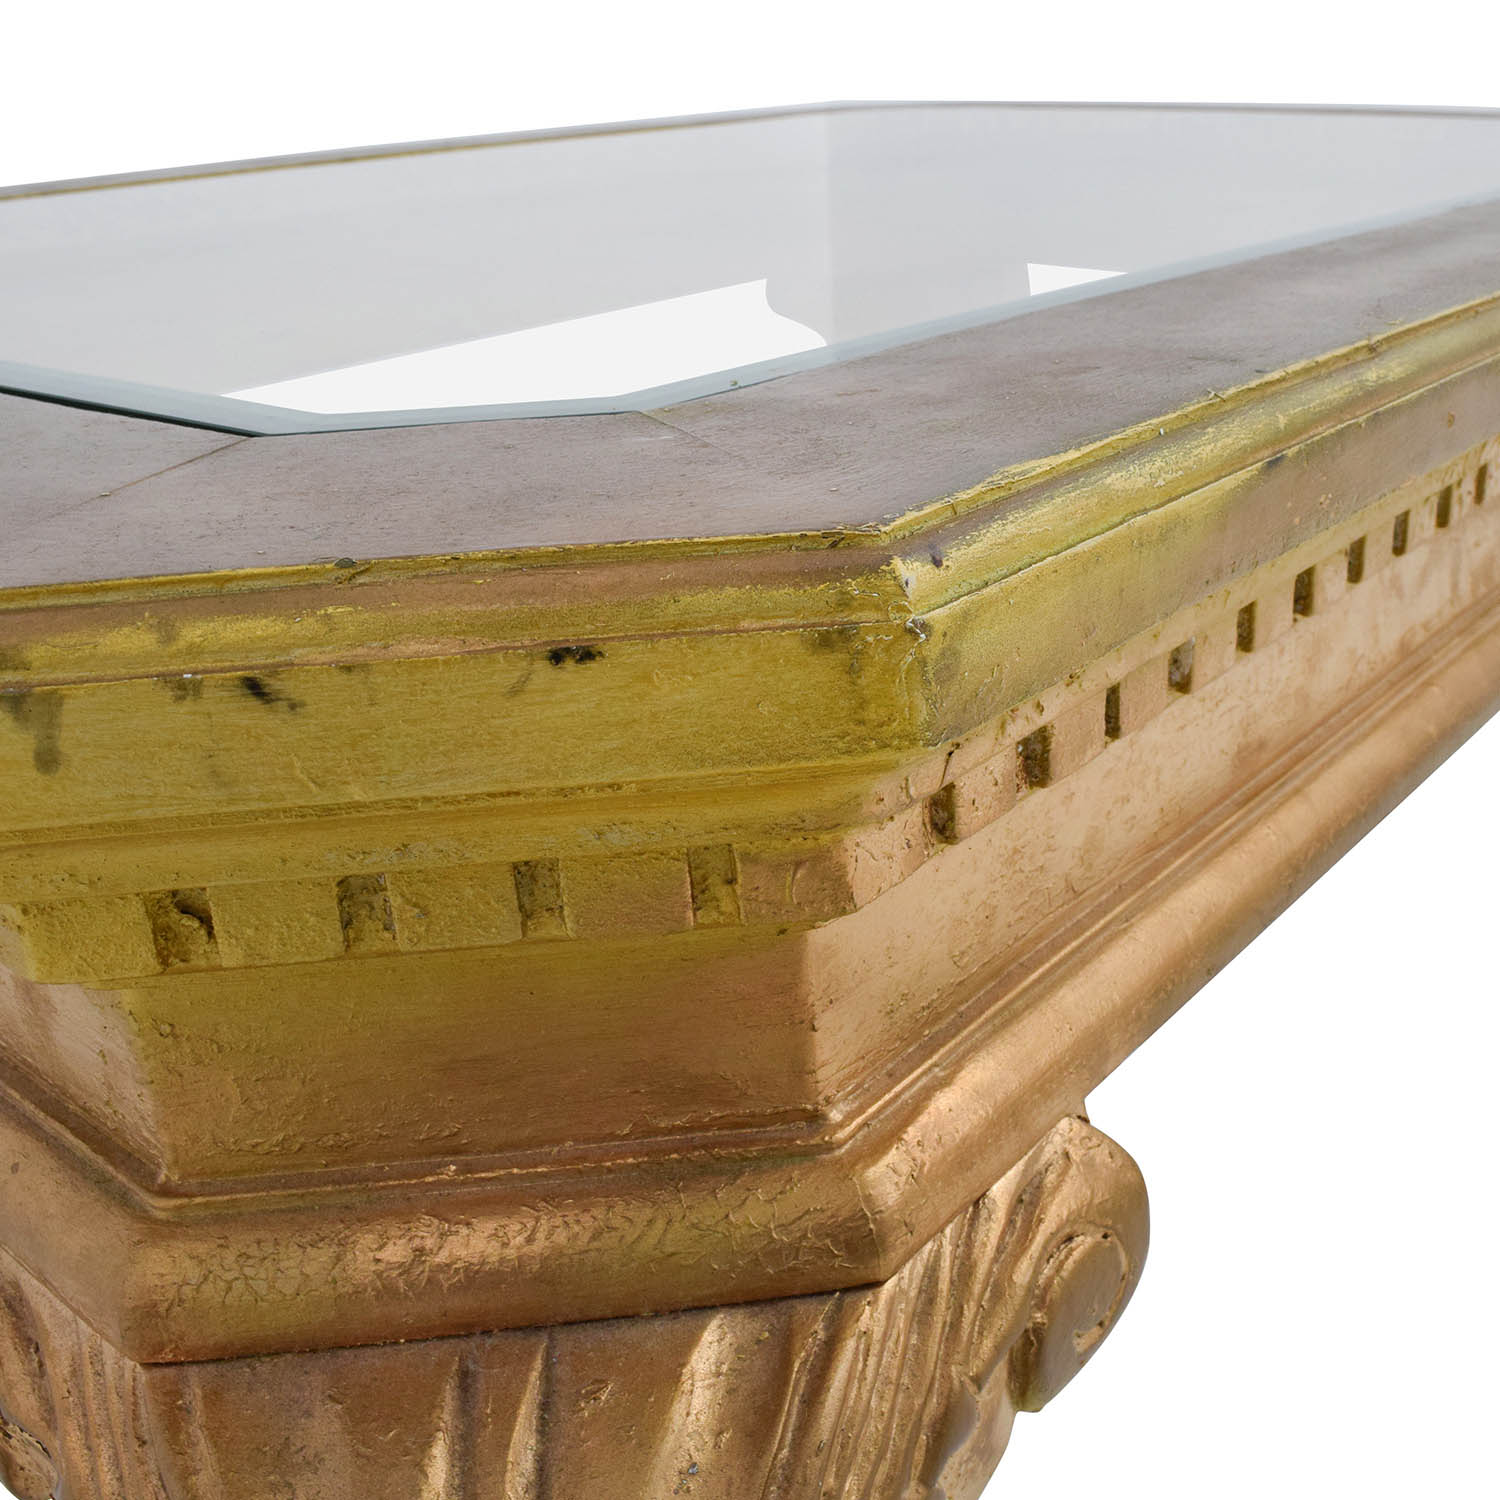 Antique Gold And Glass Coffee Table: Distressed Wood Antique Gold And Glass Coffee